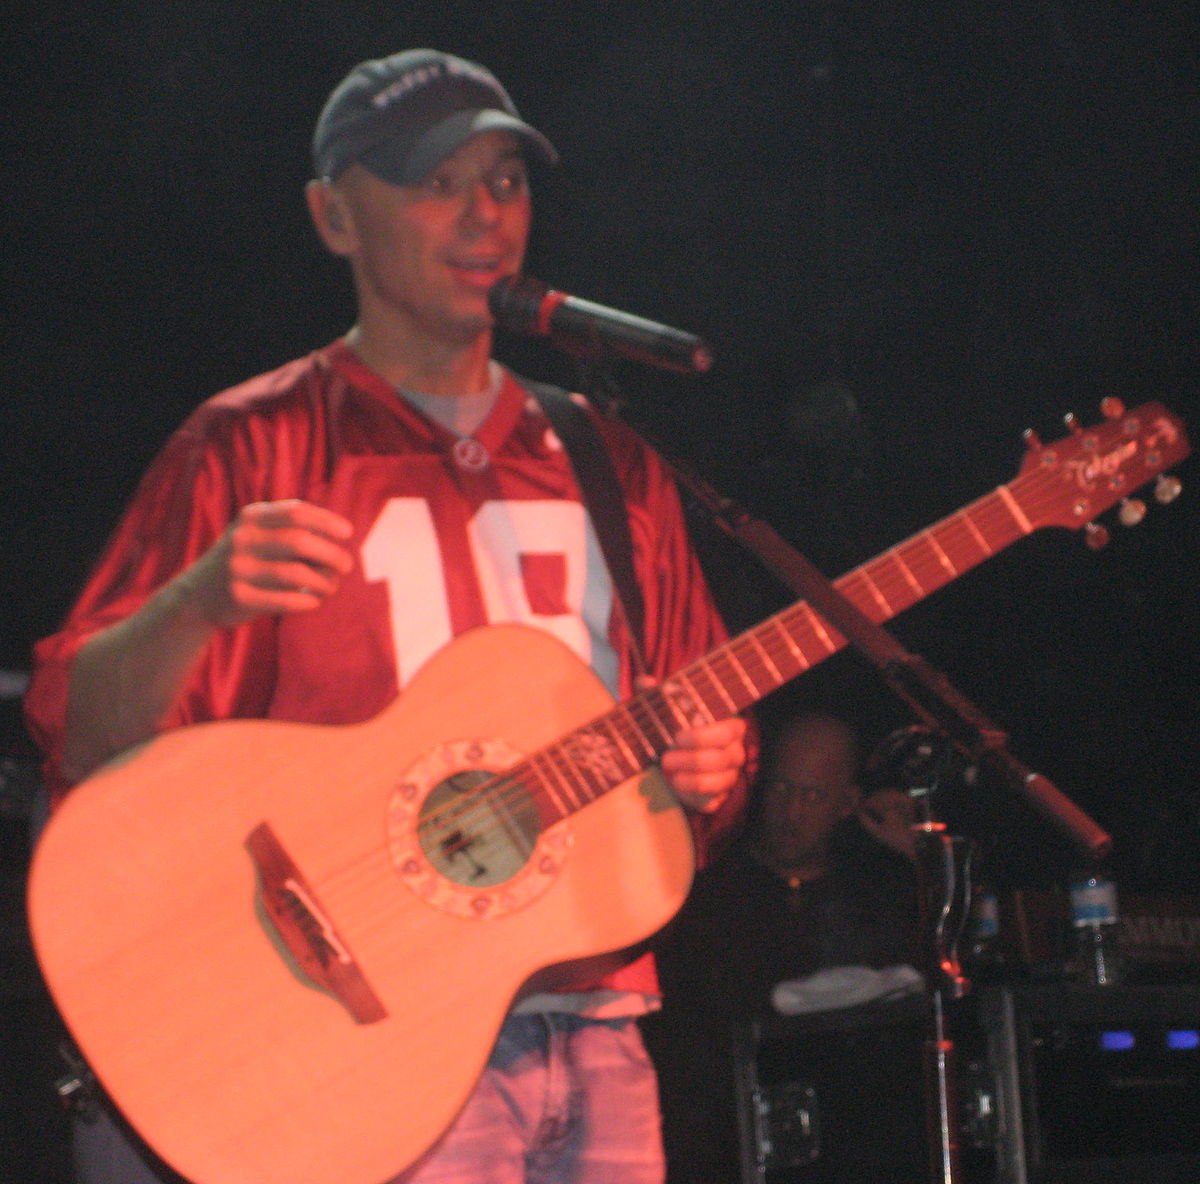 Kenny Chesney discography - Wikipedia